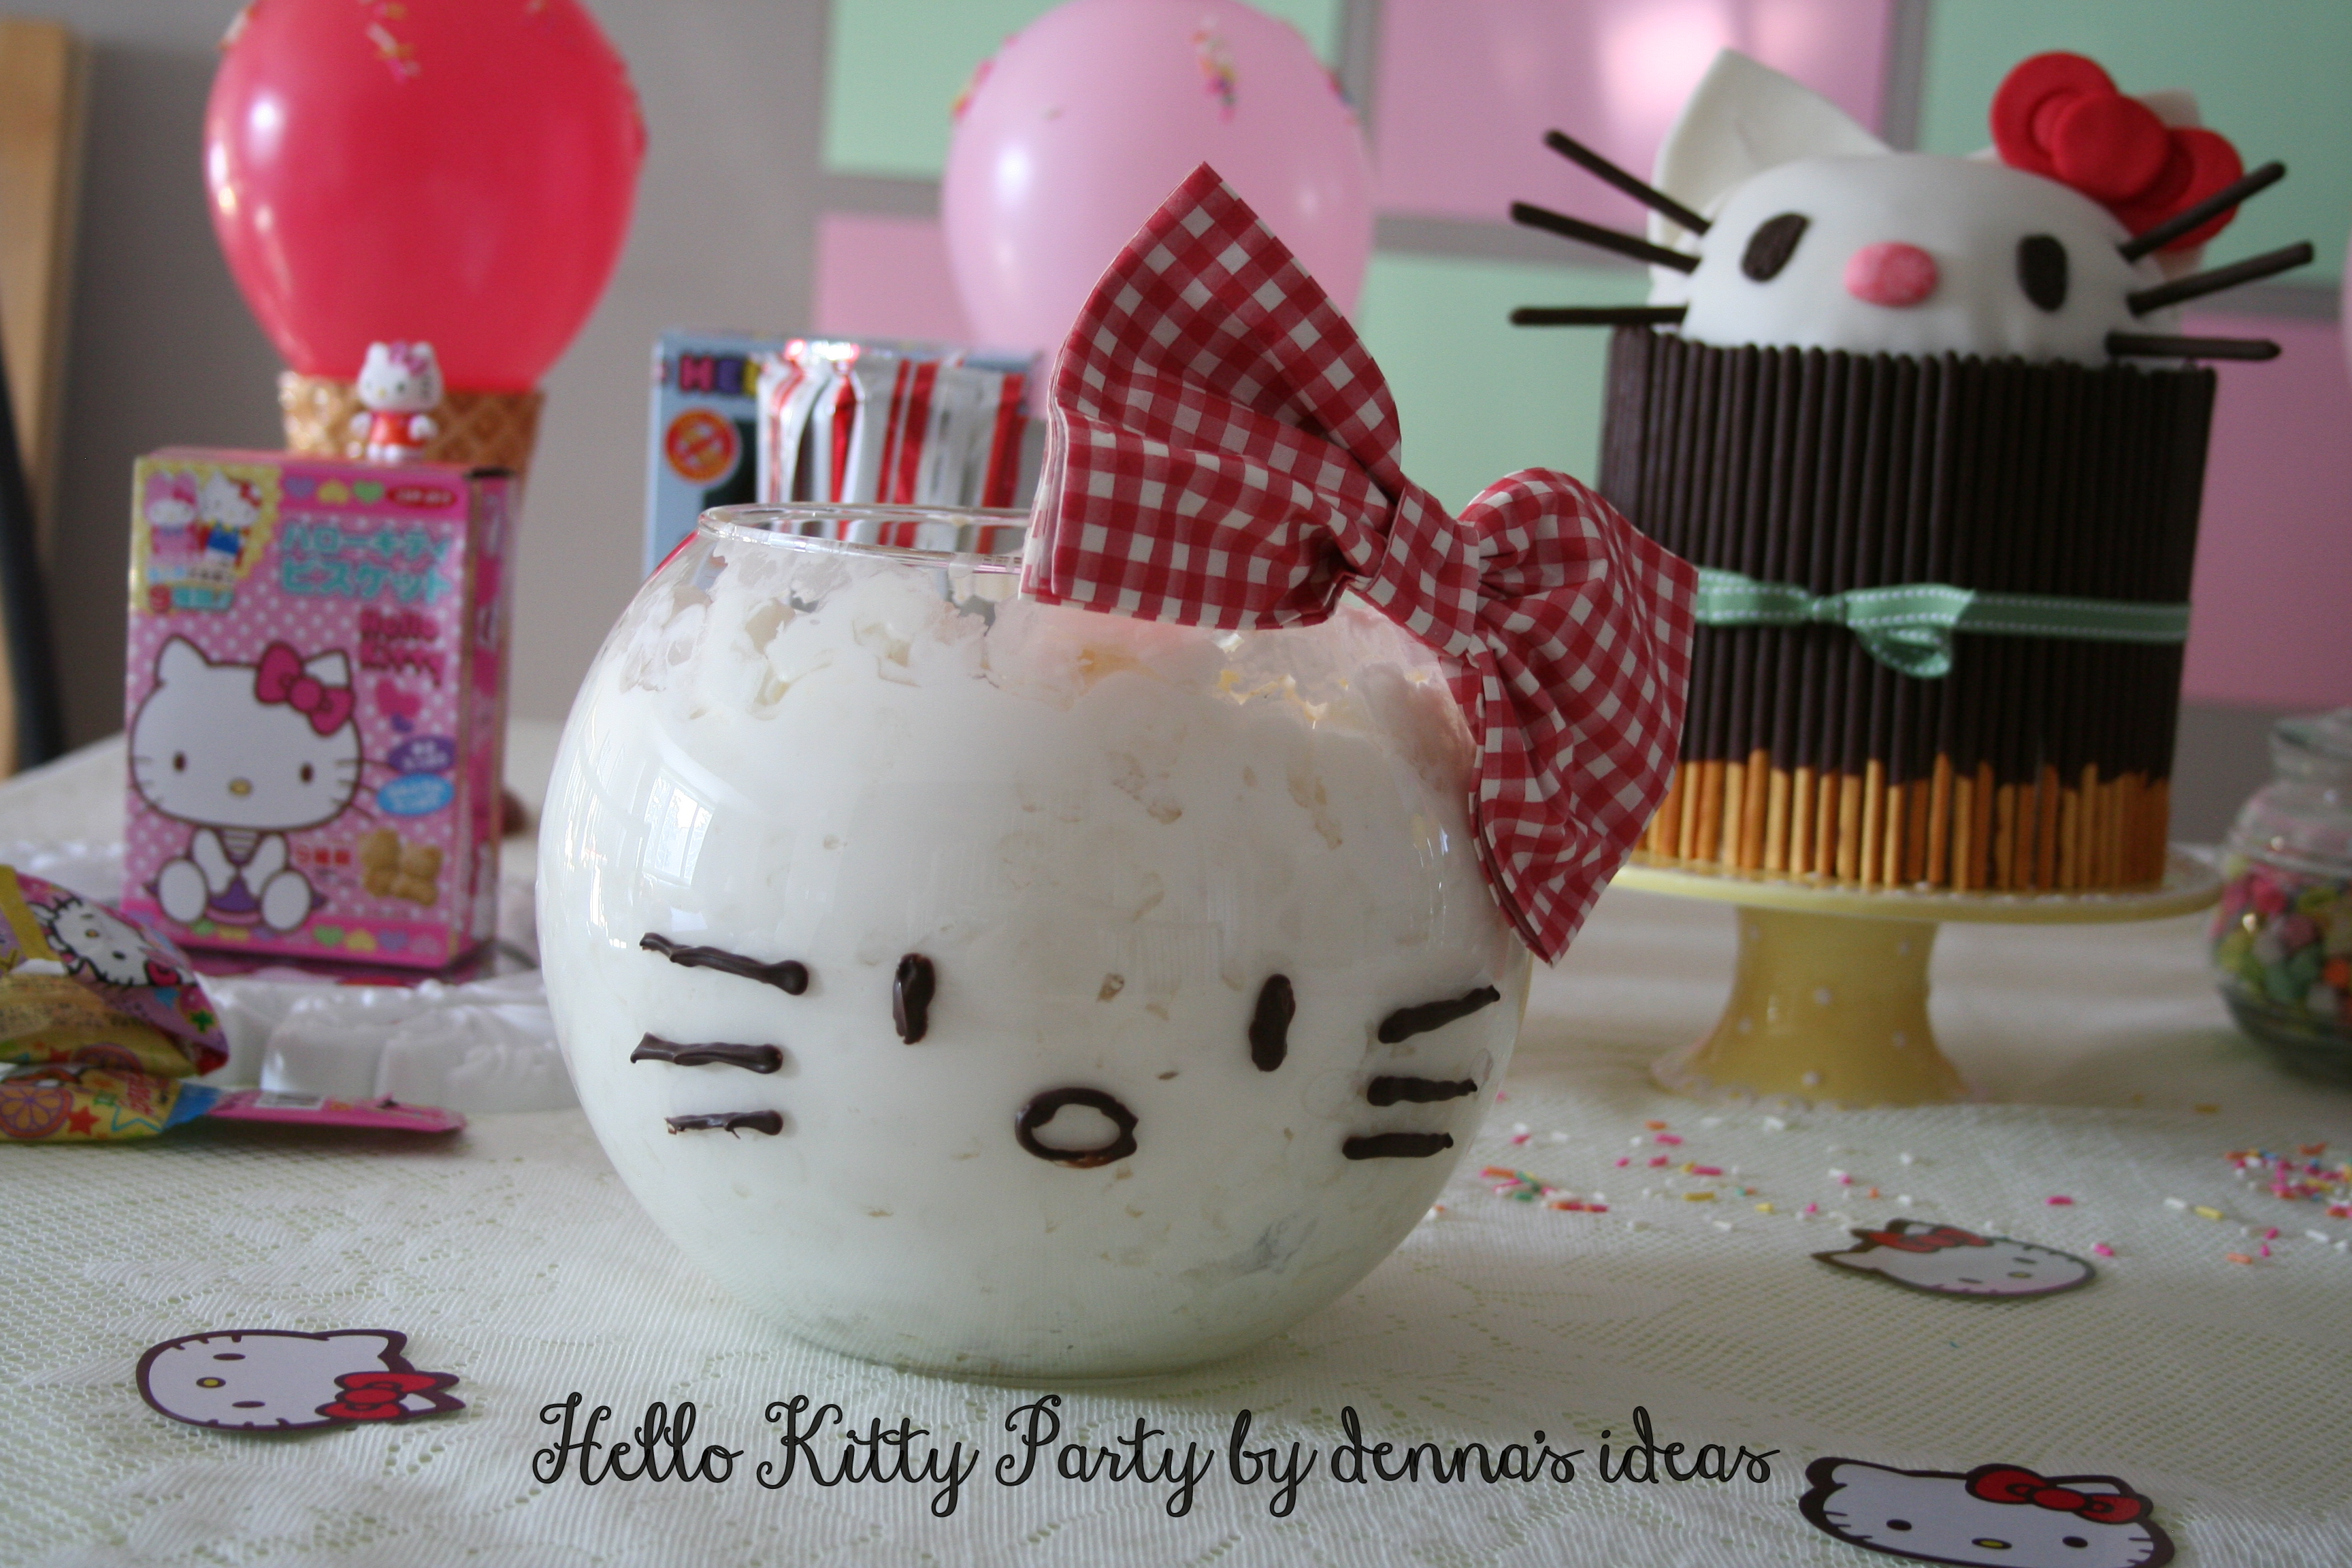 Dennas Ideas Hello Kitty Party